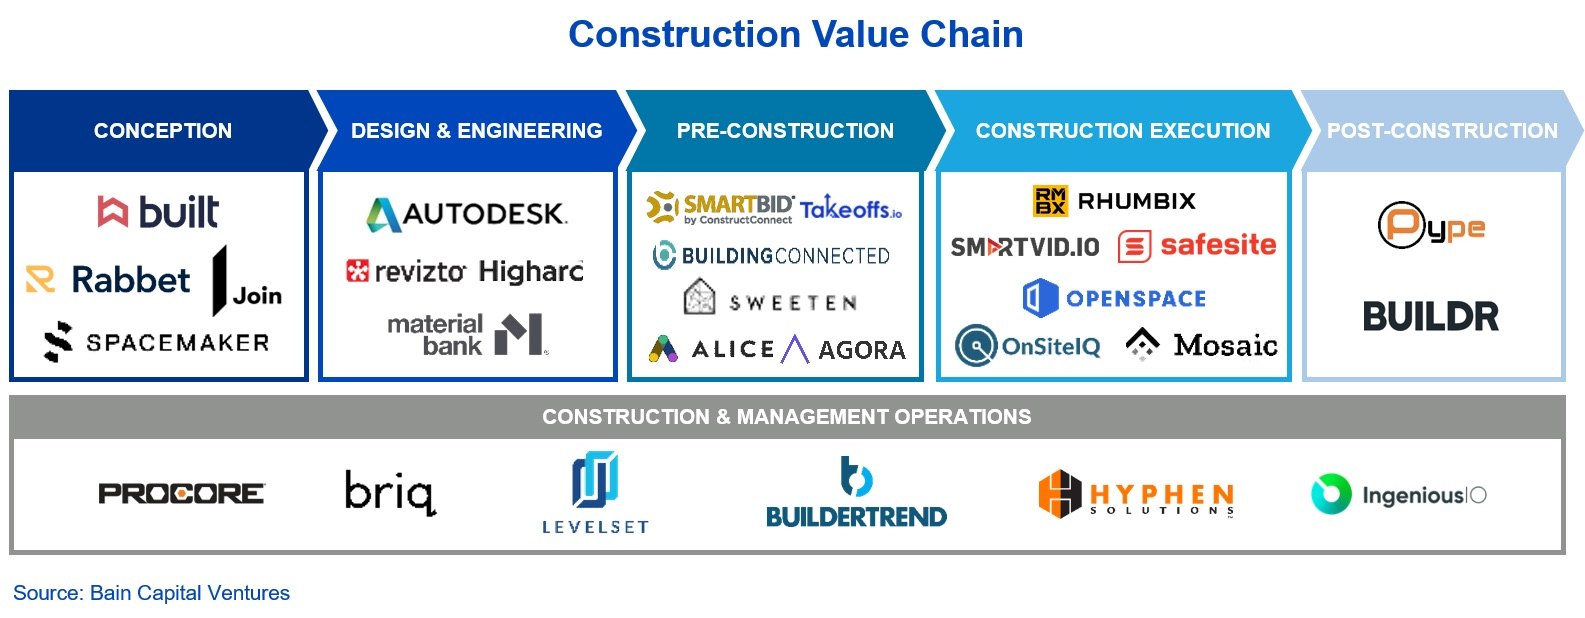 Construction value chain